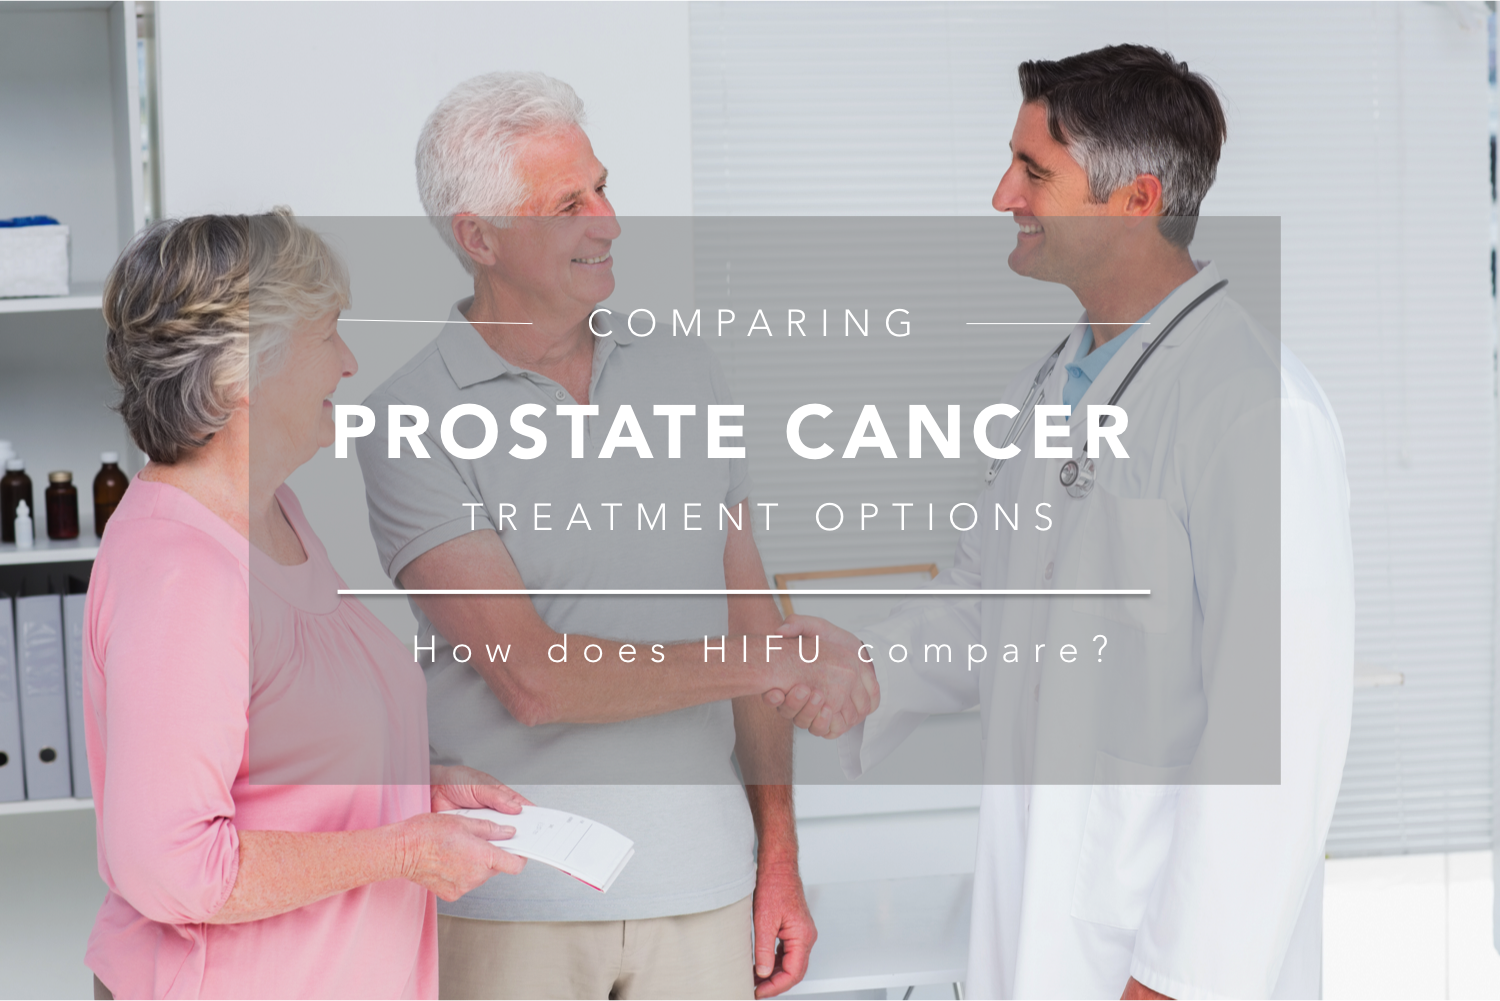 How Does HIFU Compare for prostate cancer treatment?